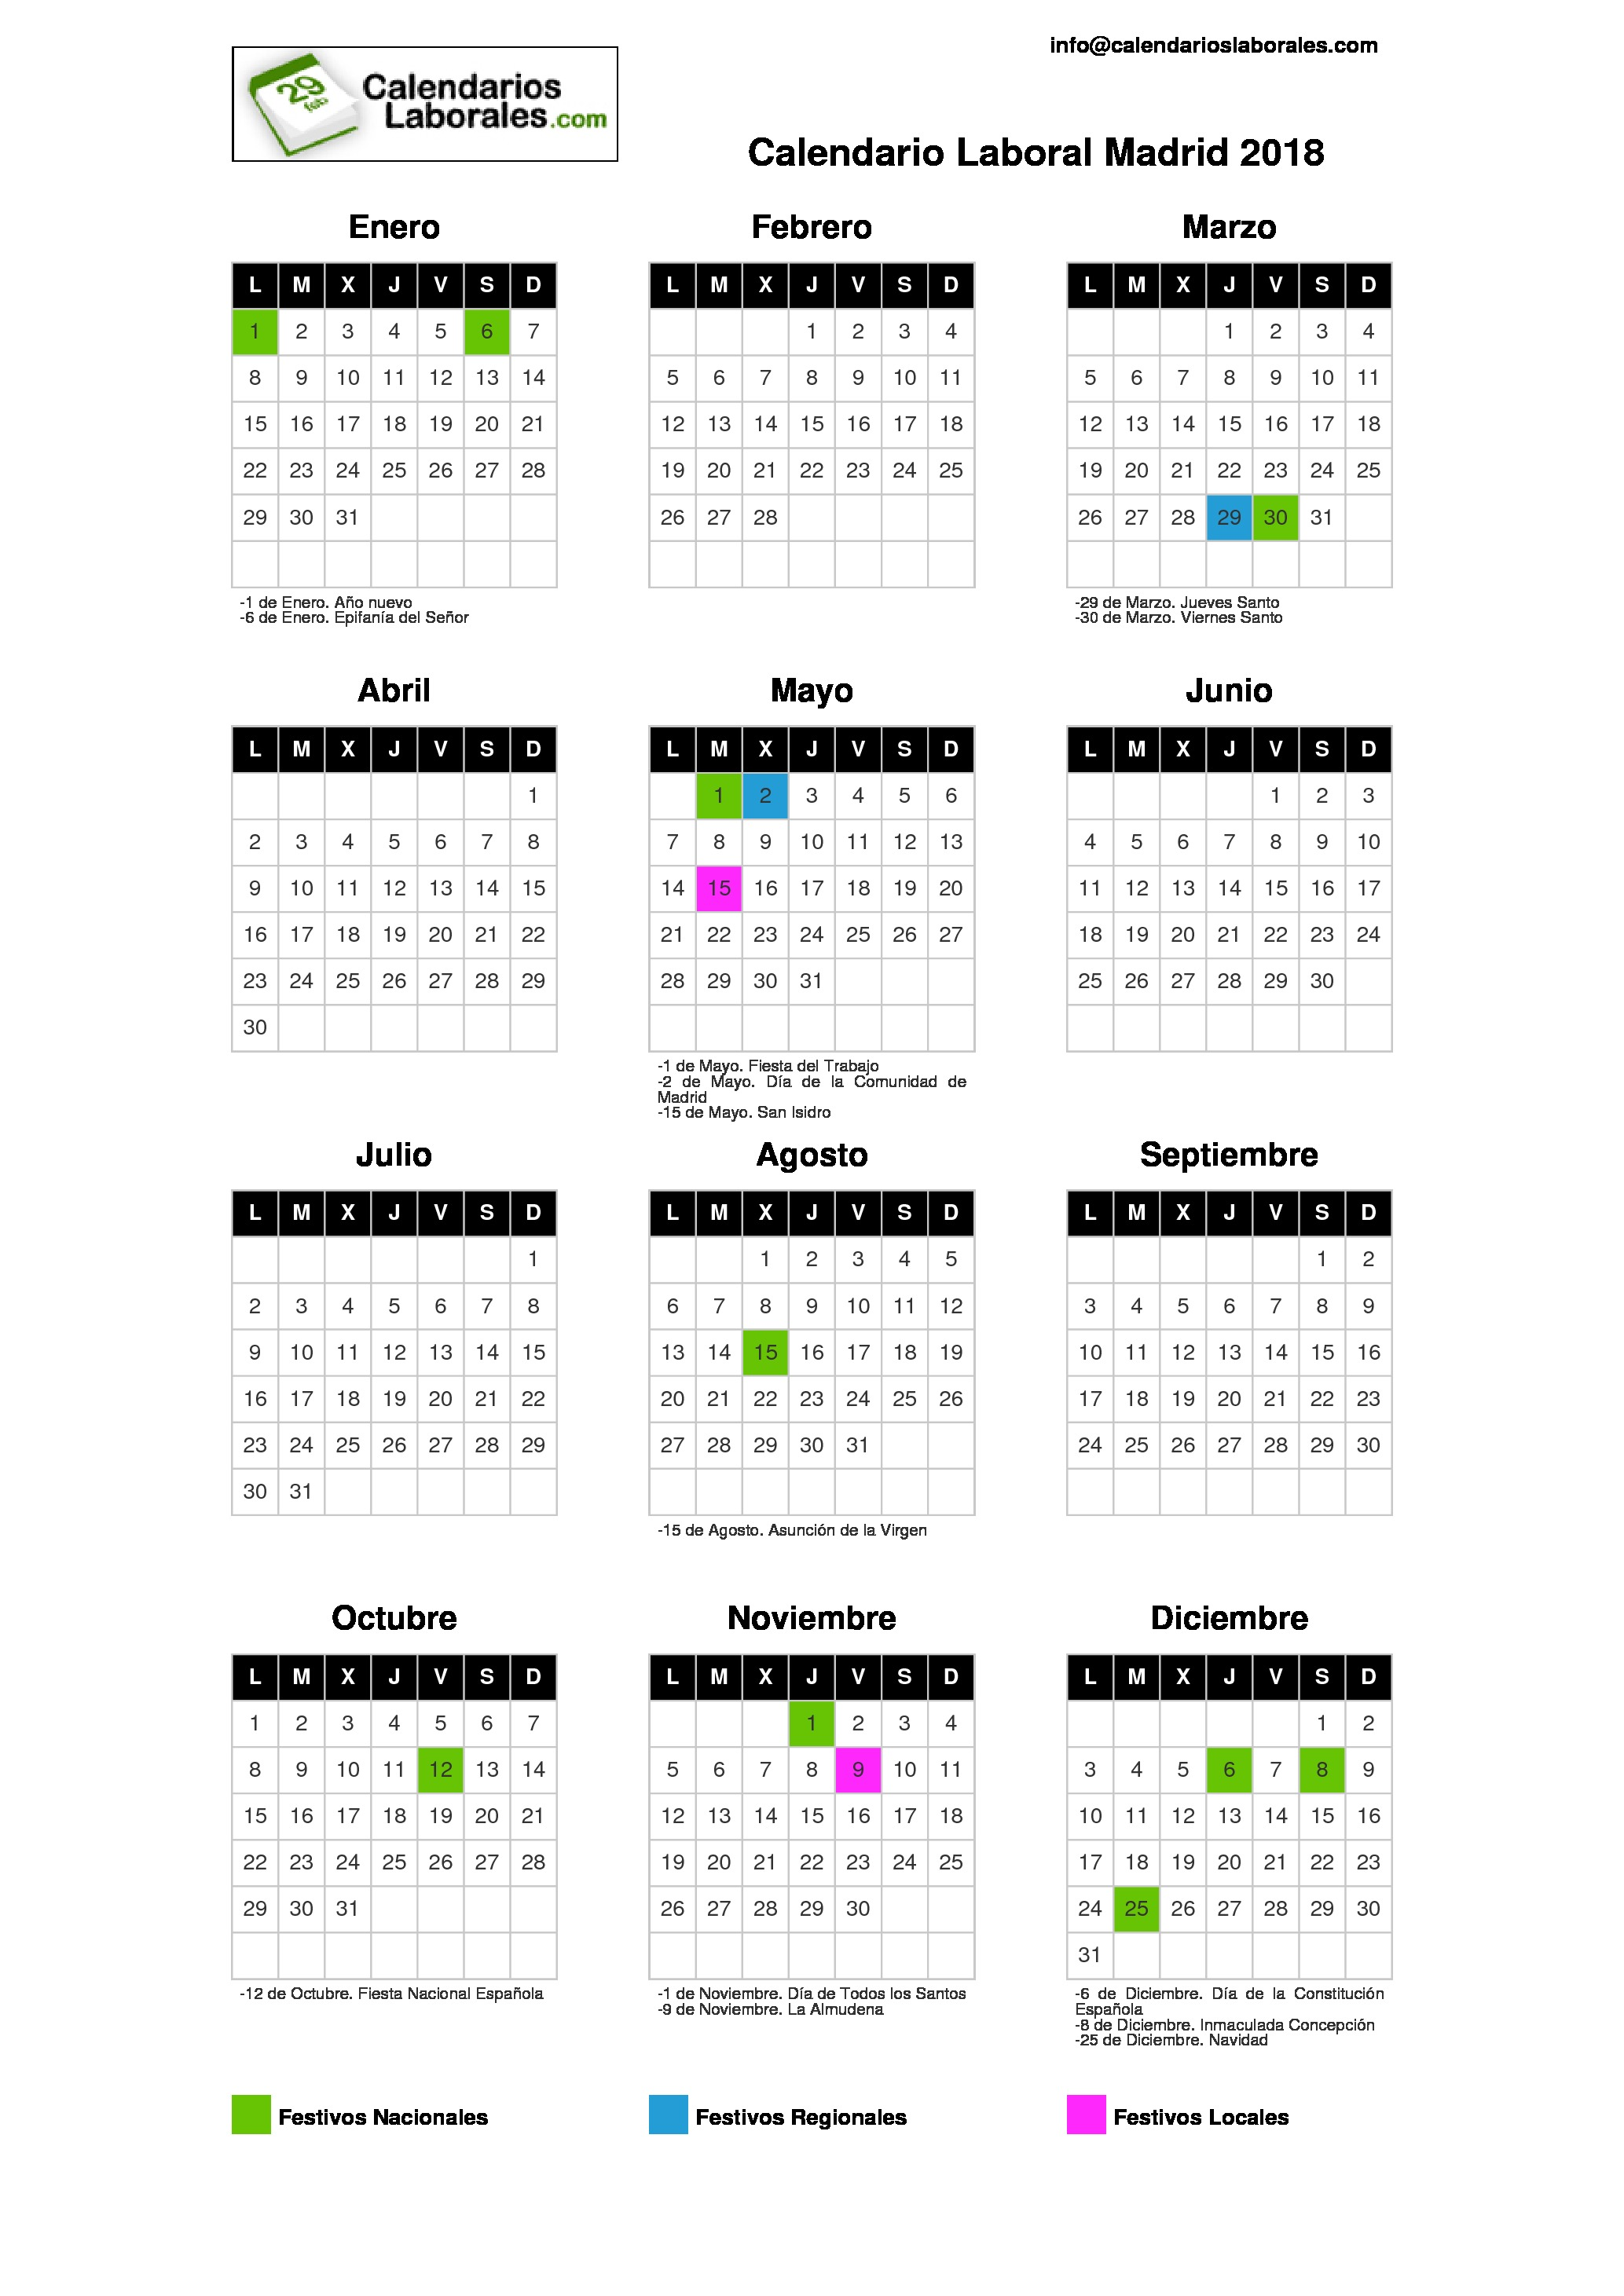 Calendario 3018.Calendario Laboral Madrid 2018